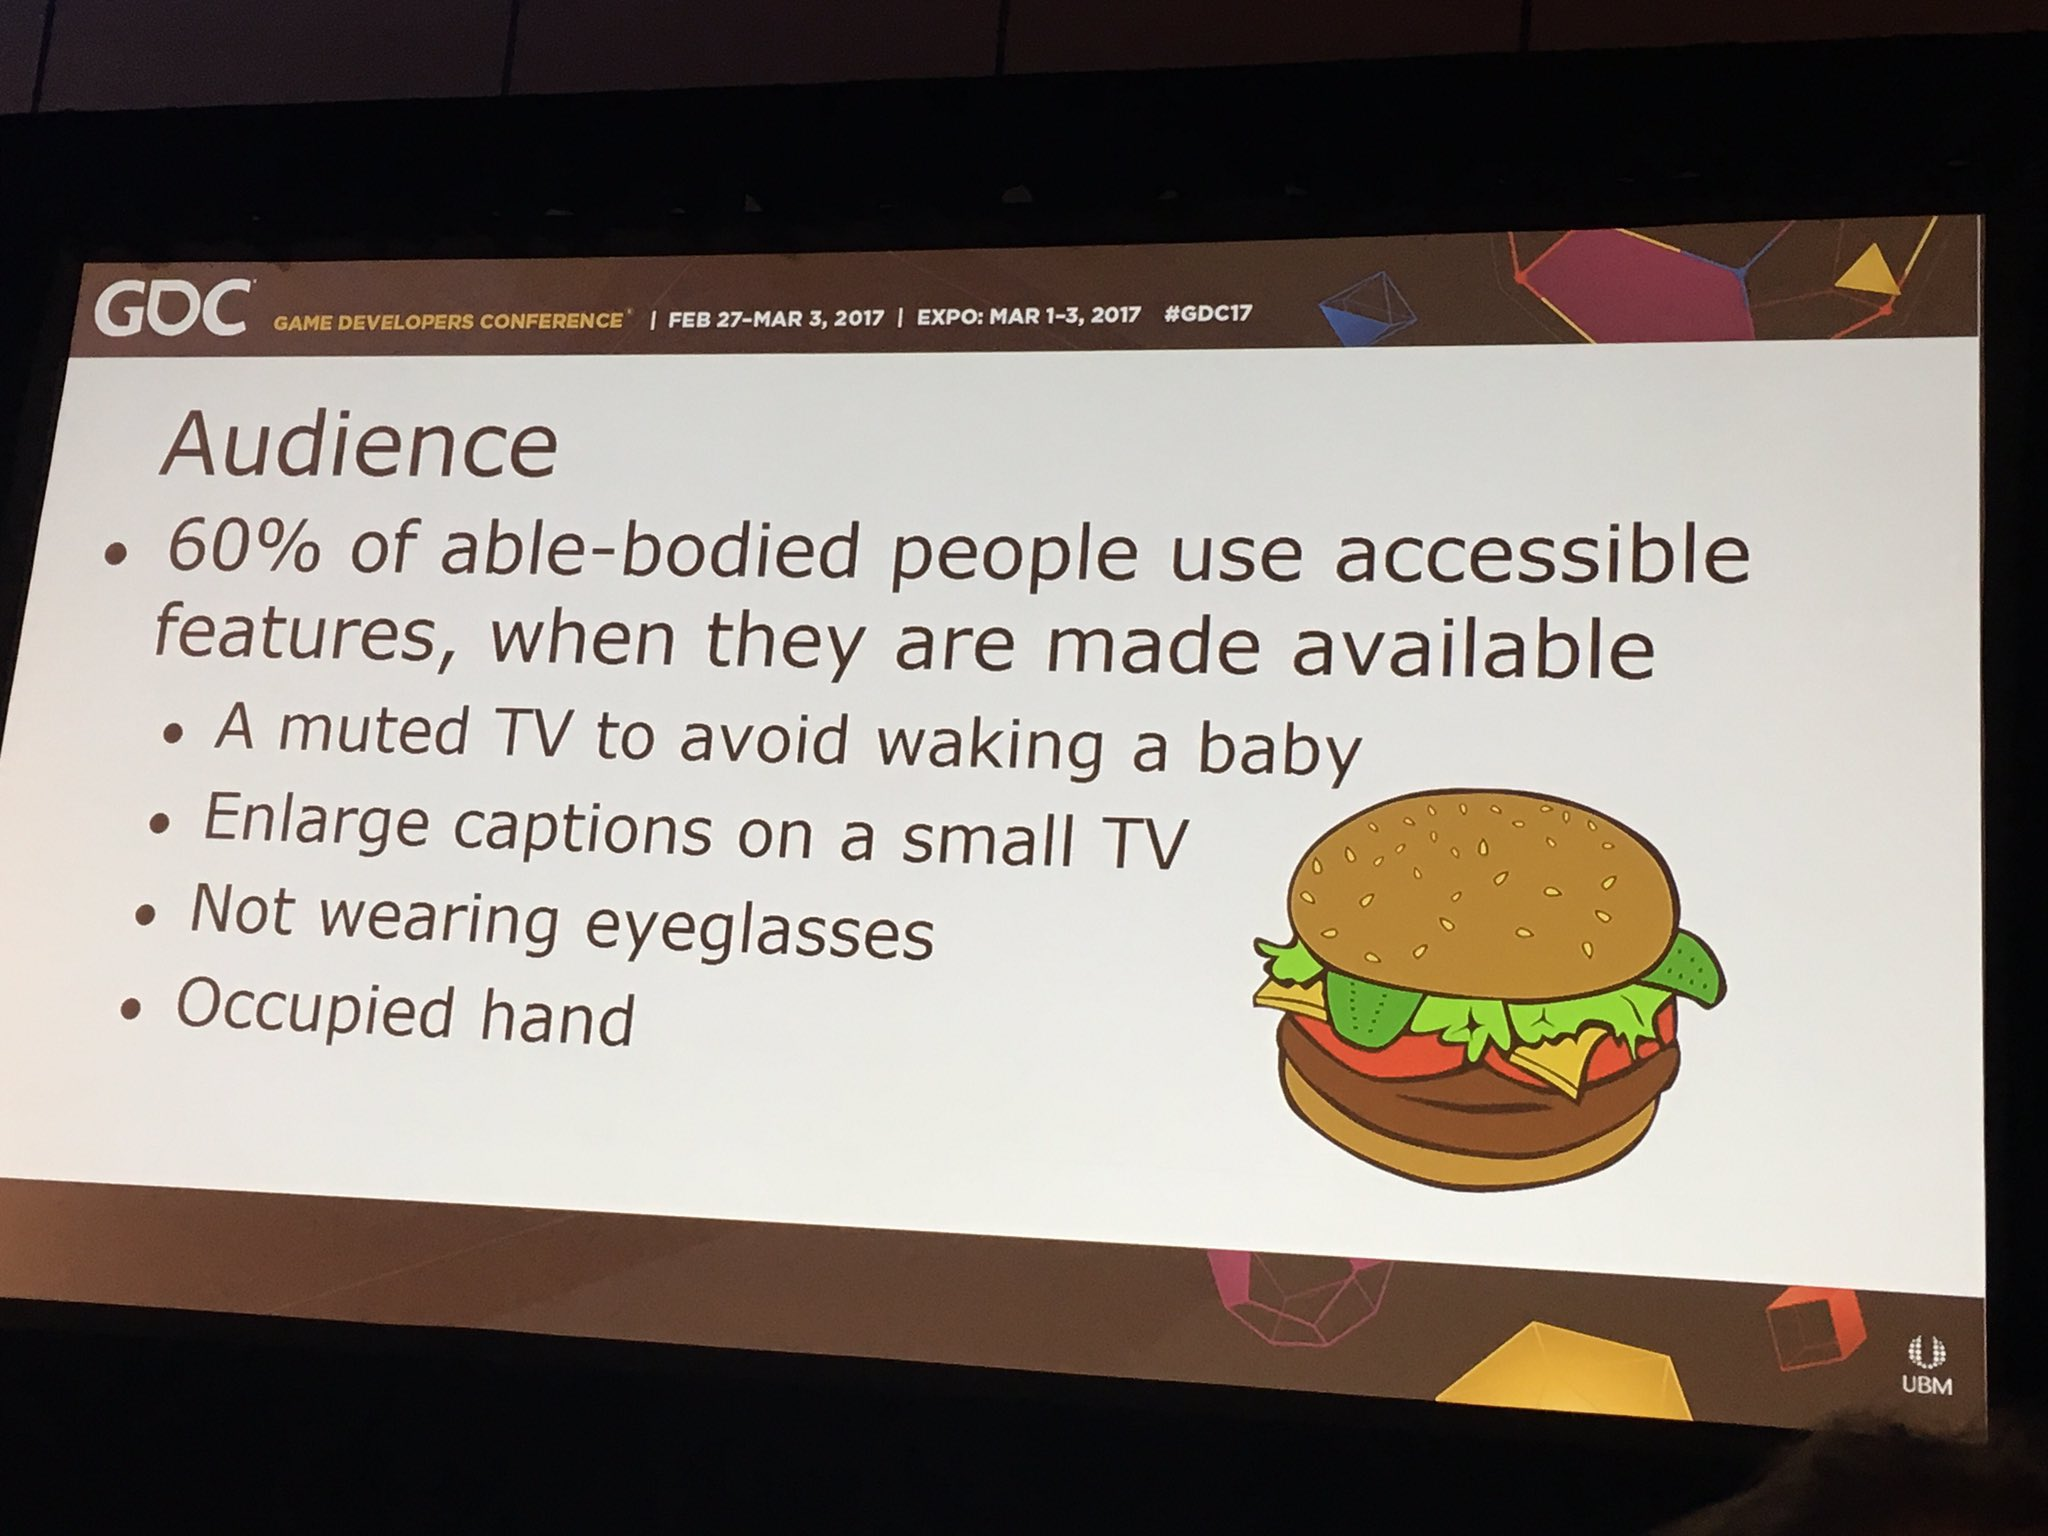 GDC slide that reads Audience: 60% of able-bodied people use accessibility features, when they are made available. A muted TV to avoid waking a baby. Enlarge captions on a small TV. Not wearing glasses. Occupied hand.